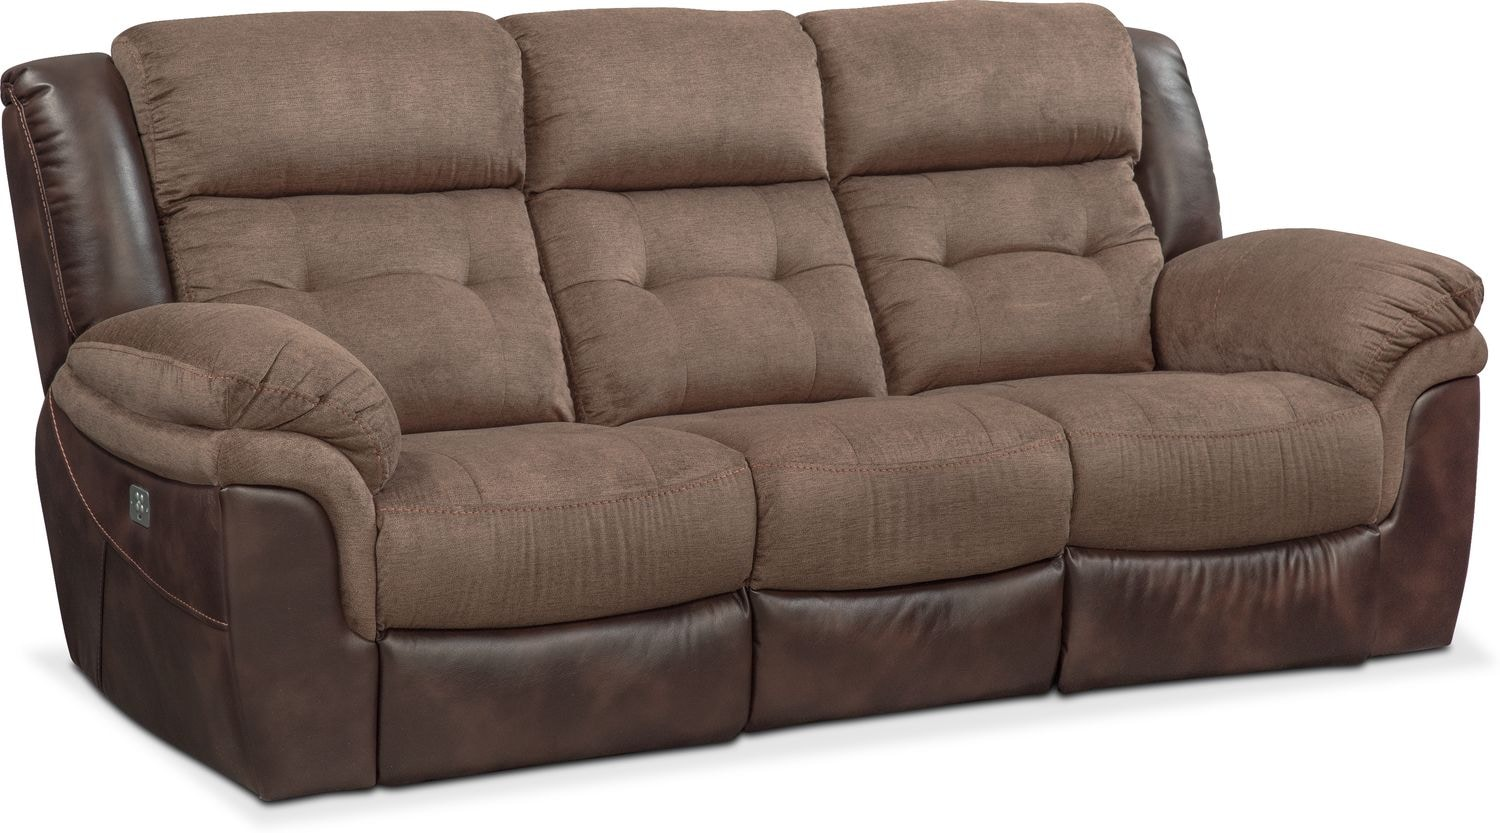 American Furniture Jpg: Tacoma Dual Power Reclining Sofa And Loveseat Set